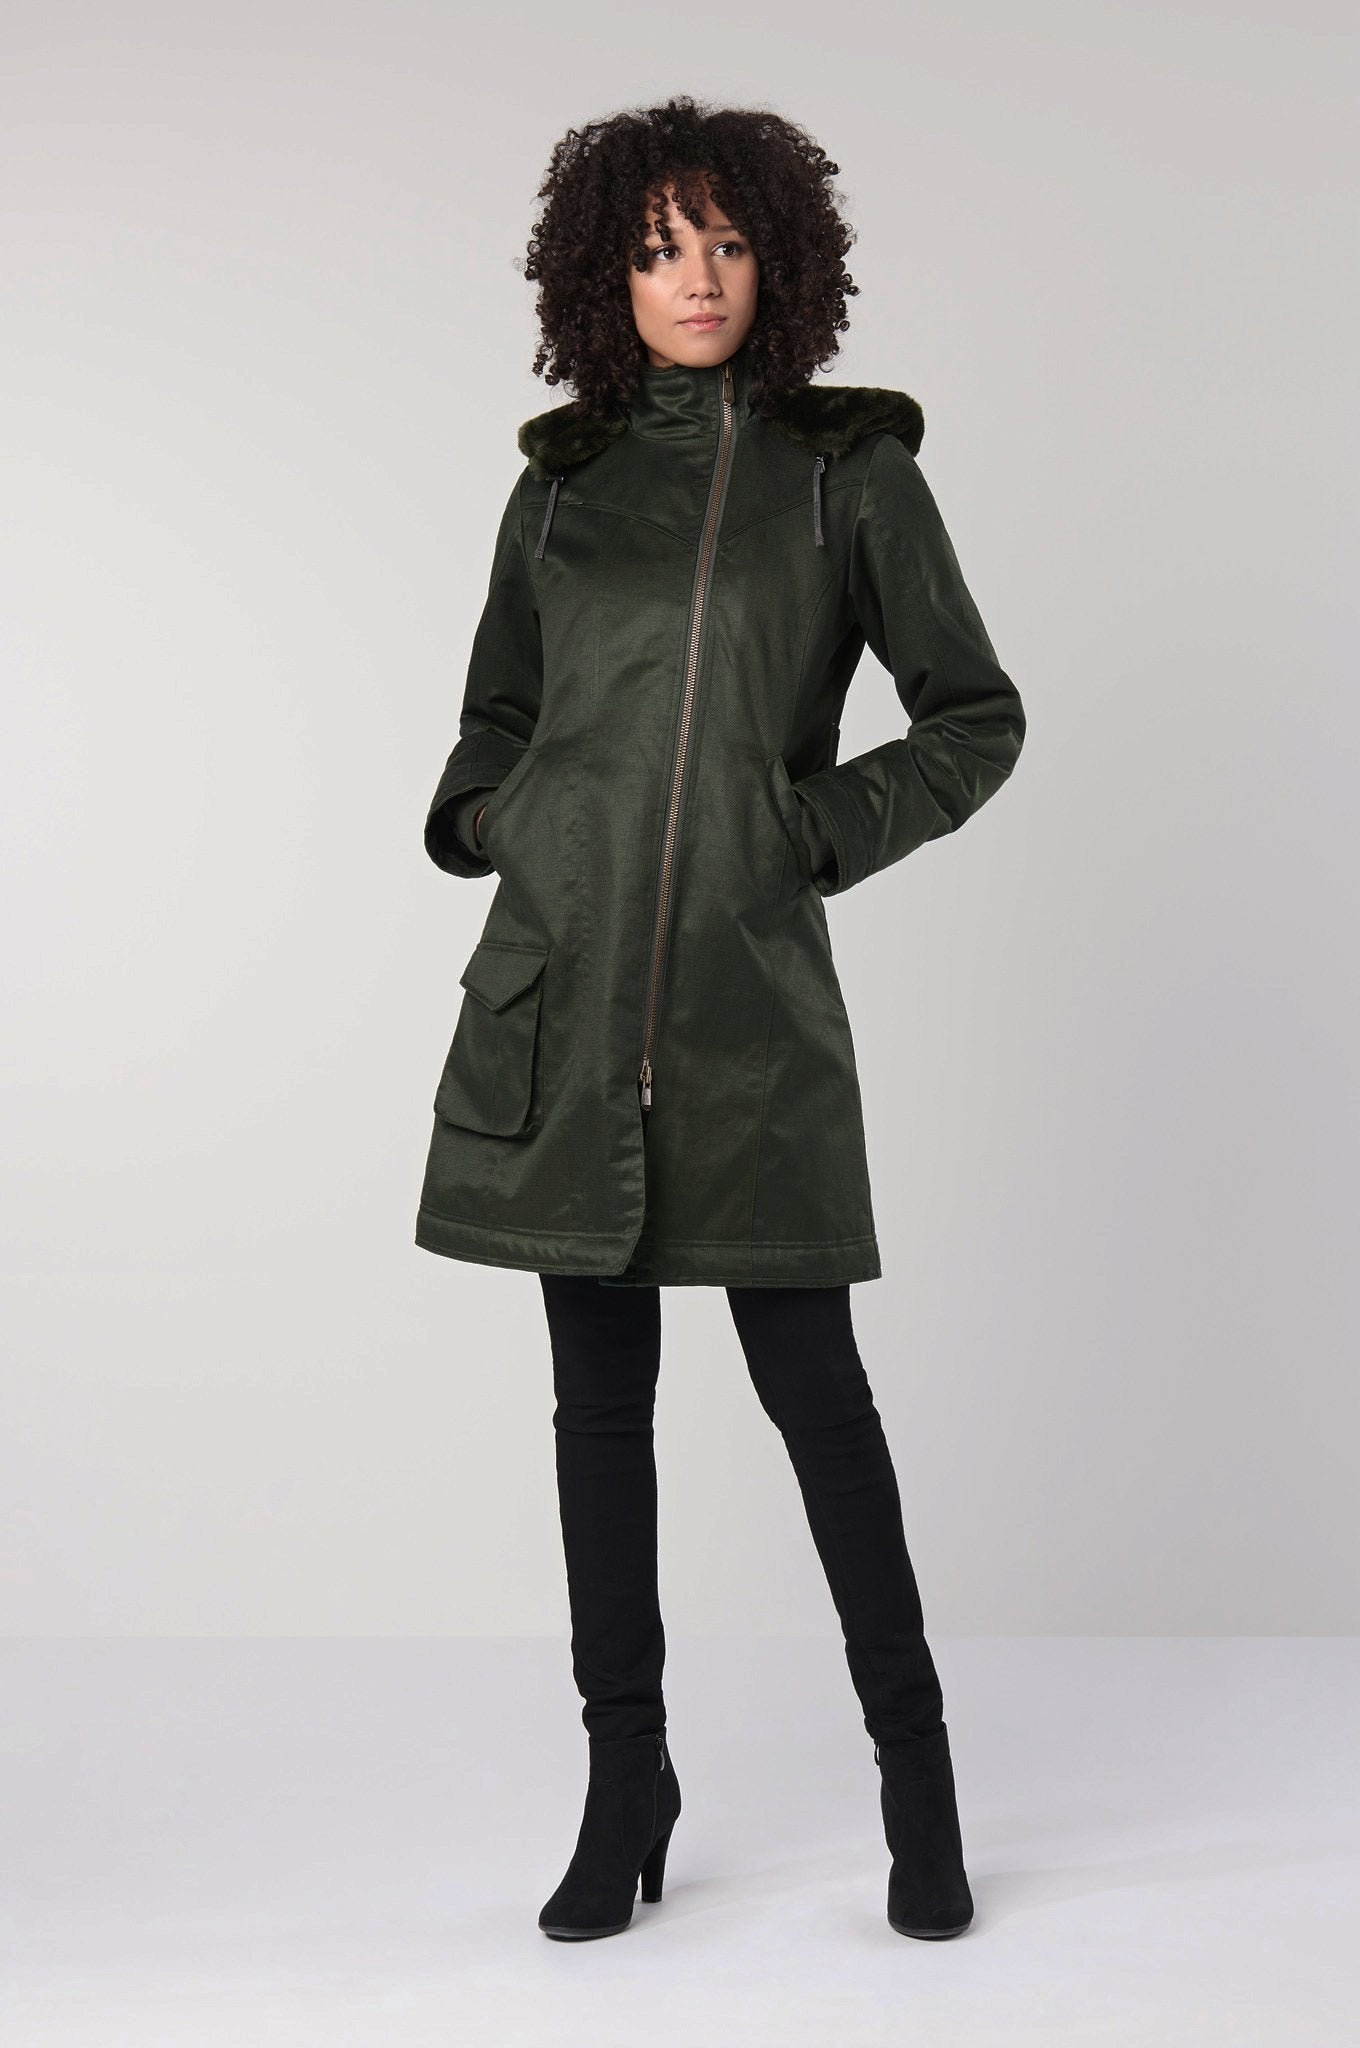 HEMP COAT Green - Komodo Fashion